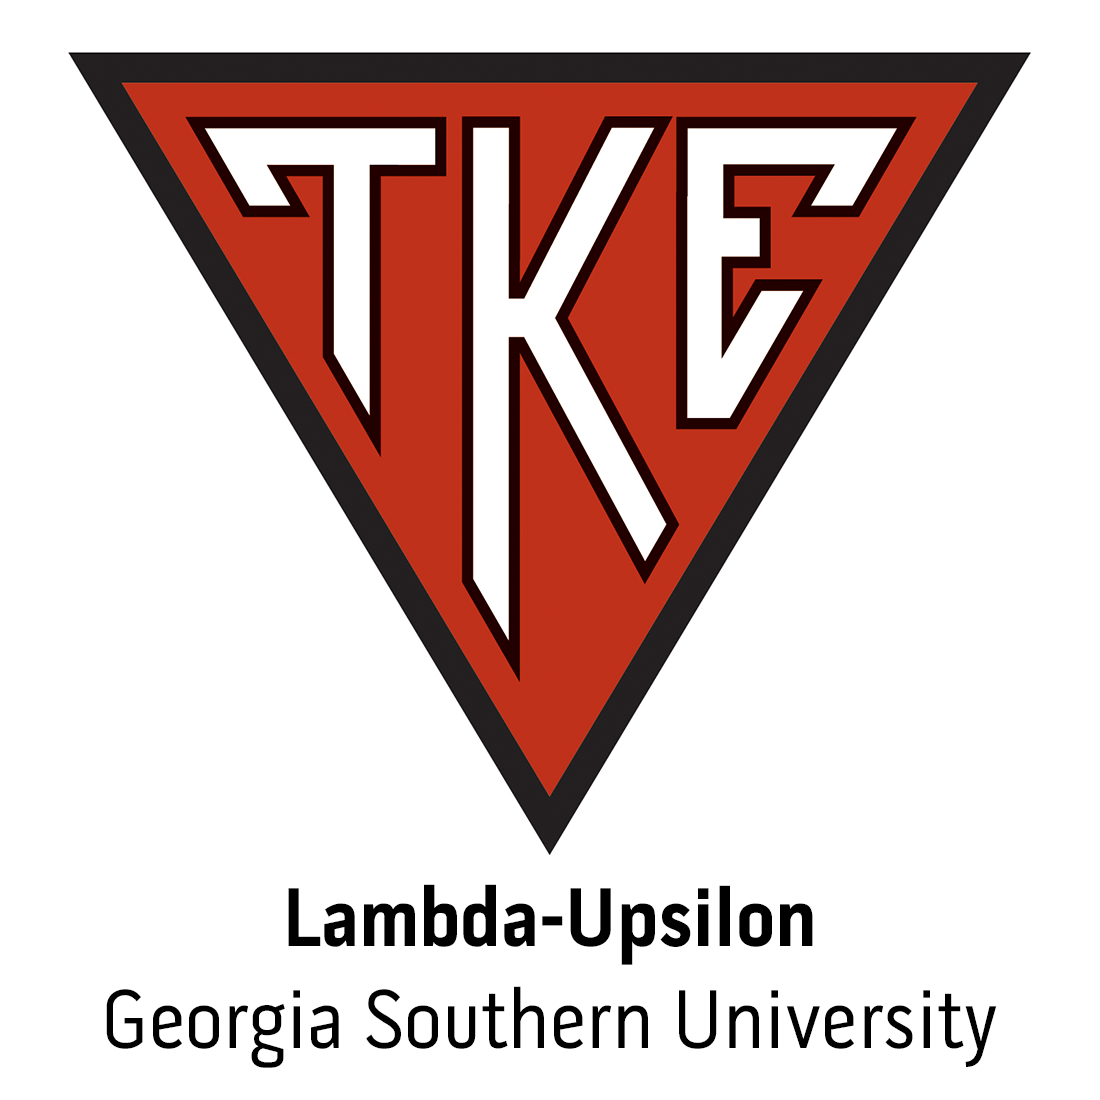 Lambda-Upsilon Chapter at Georgia Southern University